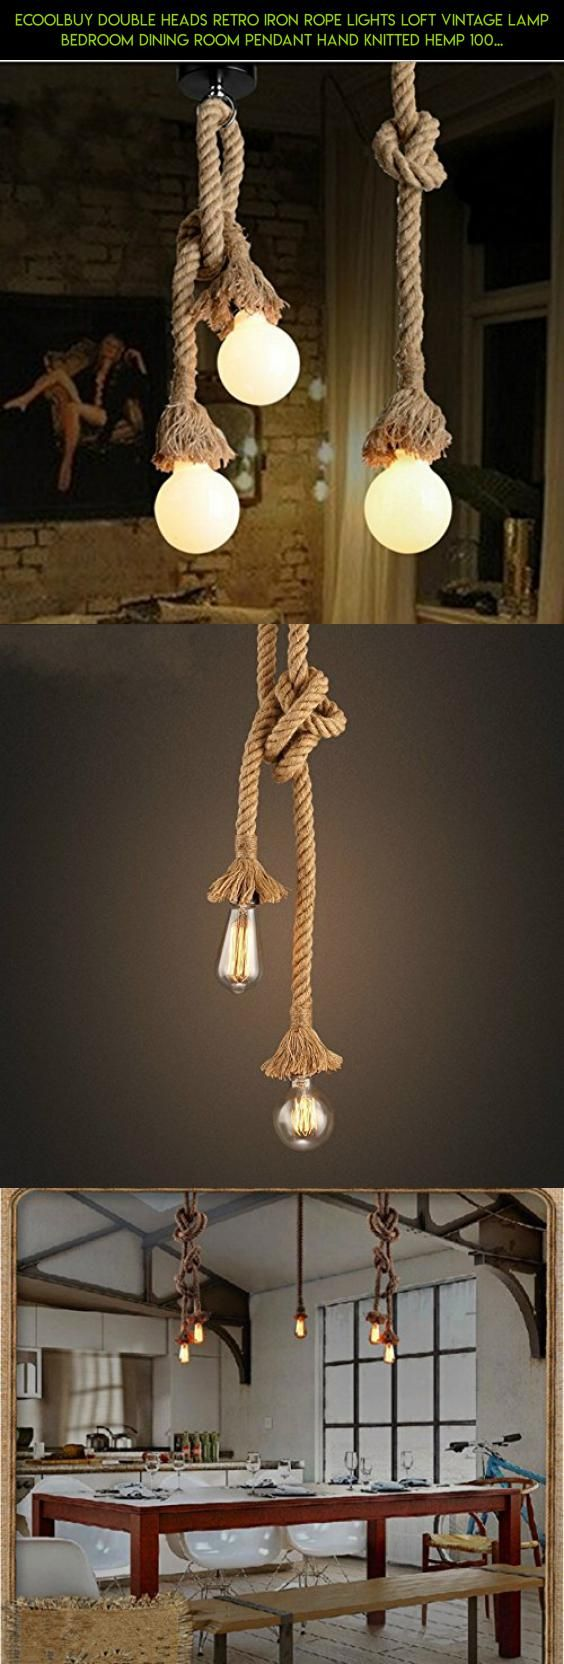 Ecoolbuy double heads retro iron rope lights loft vintage lamp ecoolbuy double heads retro iron rope lights loft vintage lamp bedroom dining room pendant hand knitted aloadofball Image collections